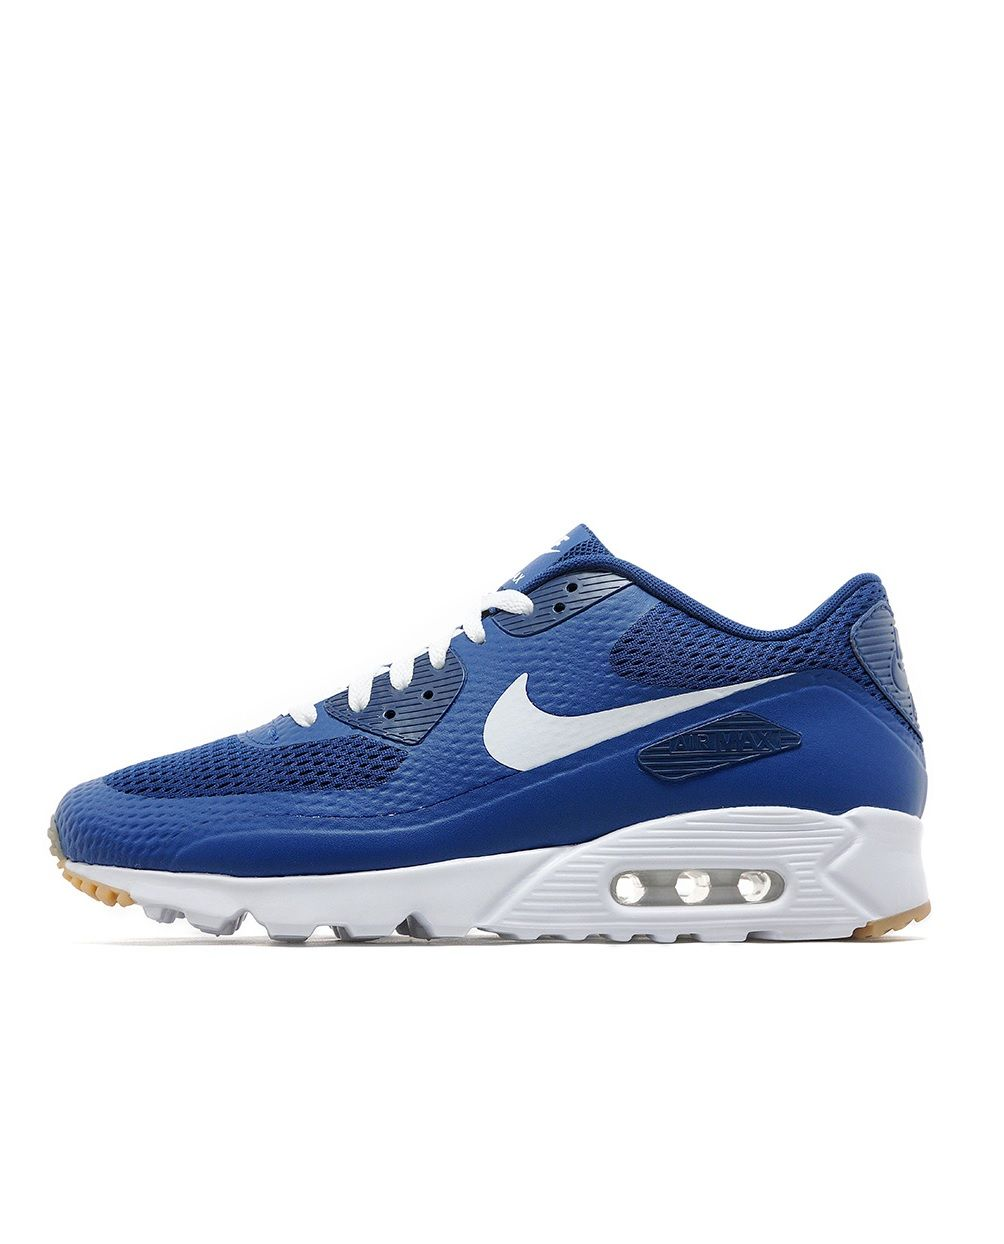 detailed look 8c443 87551 Nike Air Max 90 Ultra Essential  Blue (JD Sports Exclusive)